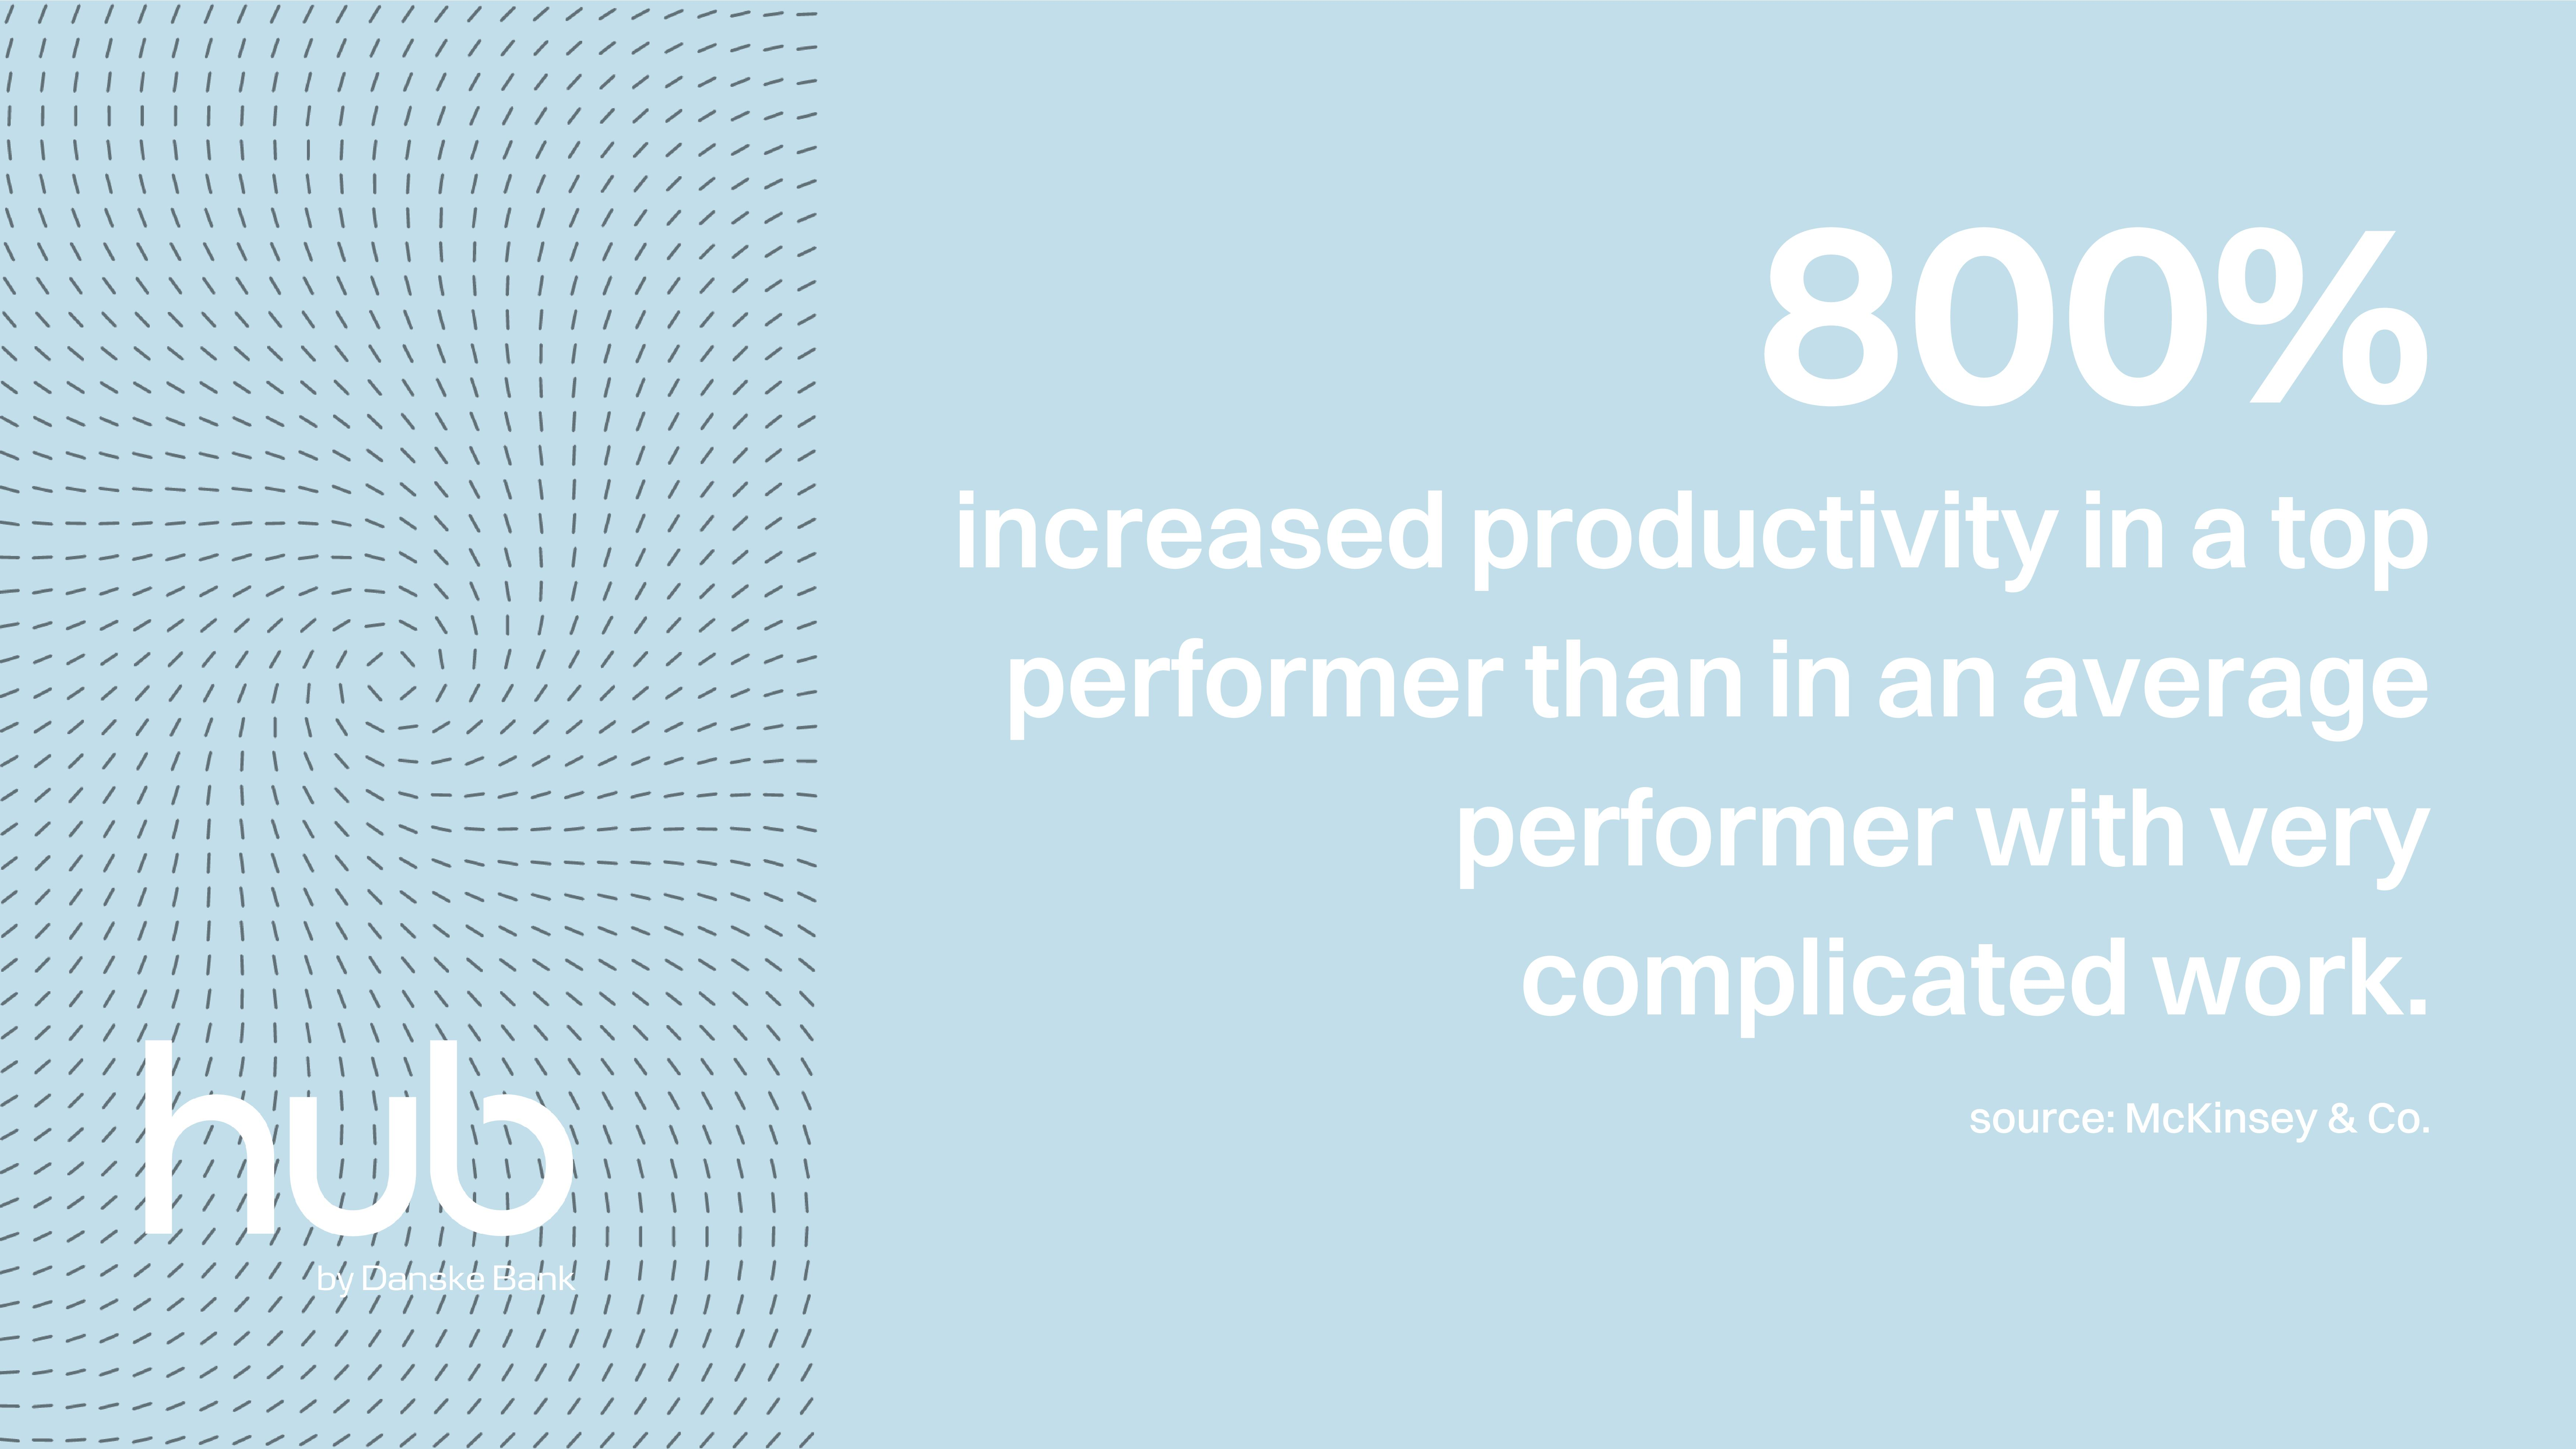 Productivity in a top performer